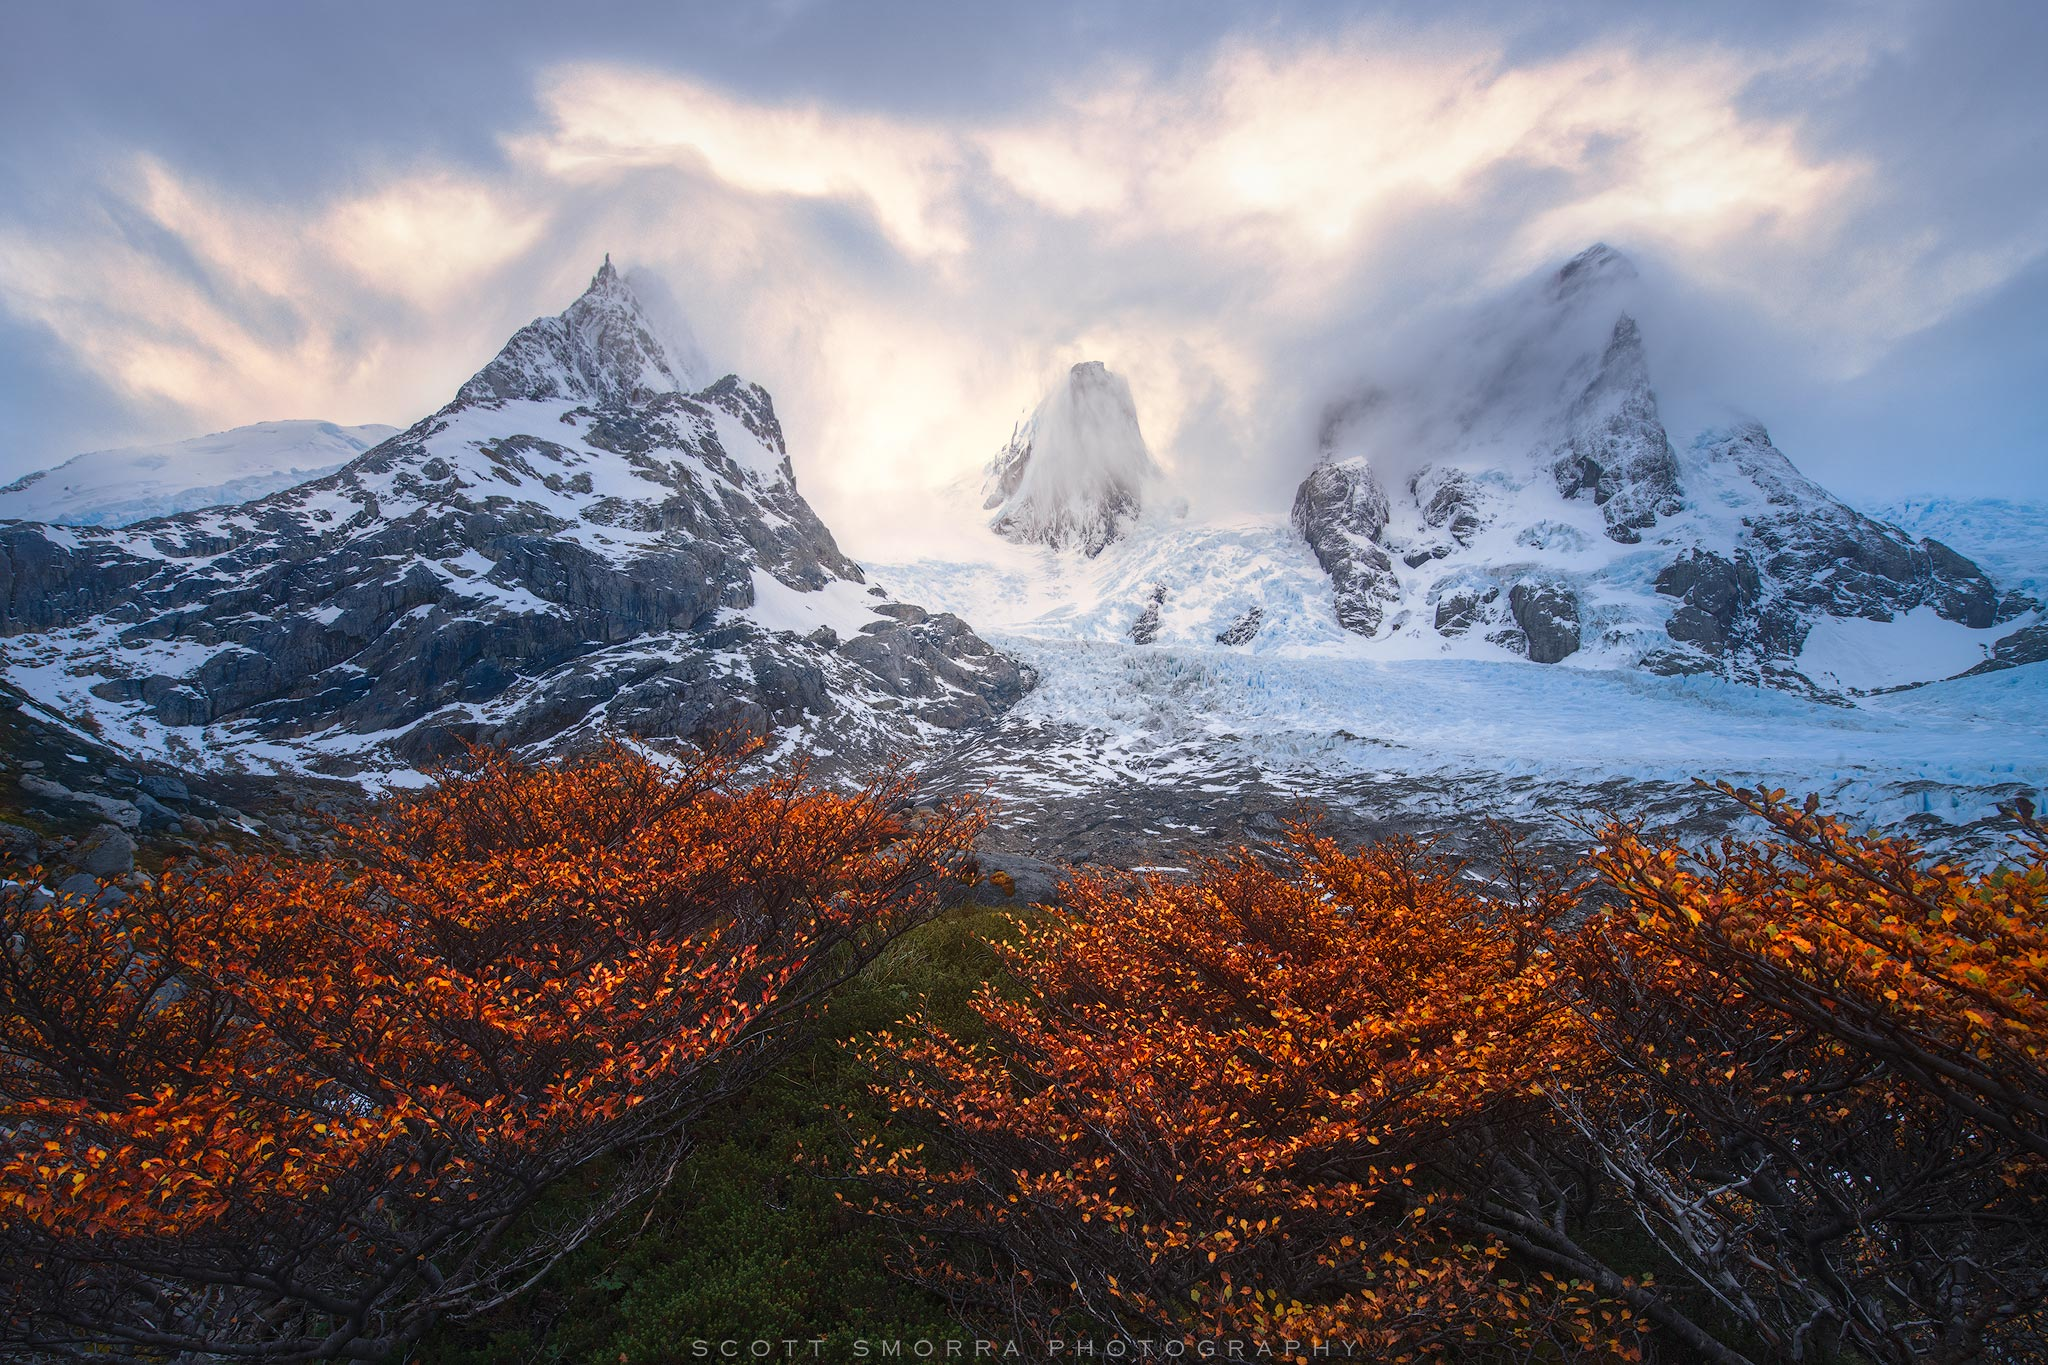 Fine Art Limited Edition of 50 - Small alpine Lenga trees frame a massive glacier and three peaks in the fjords of Patagonian...